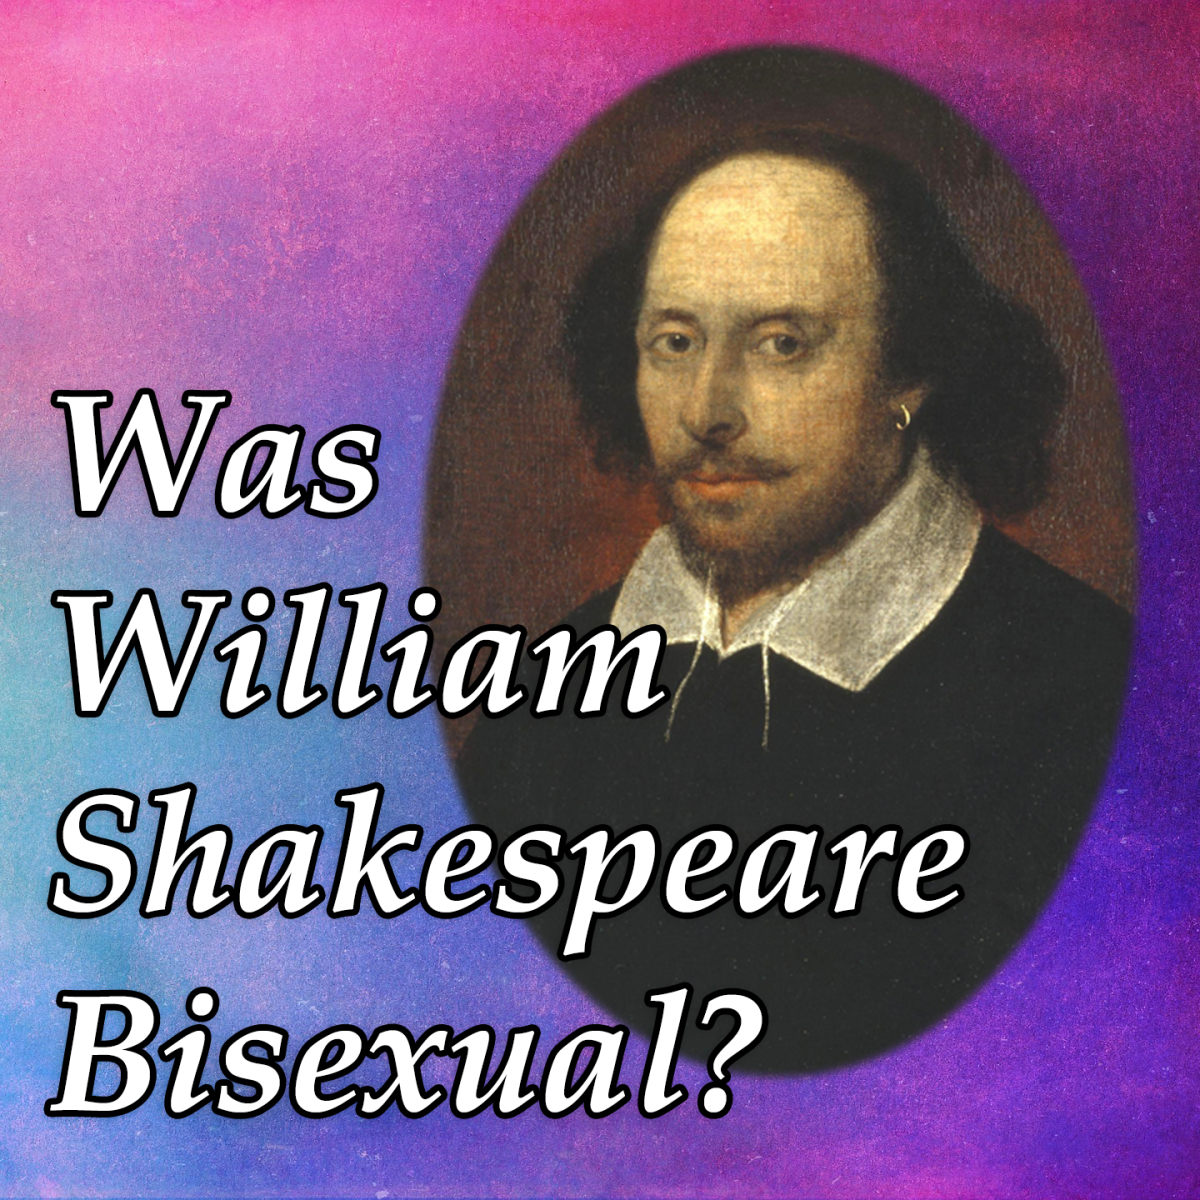 Did William Shakespeare have affairs with both men and women?